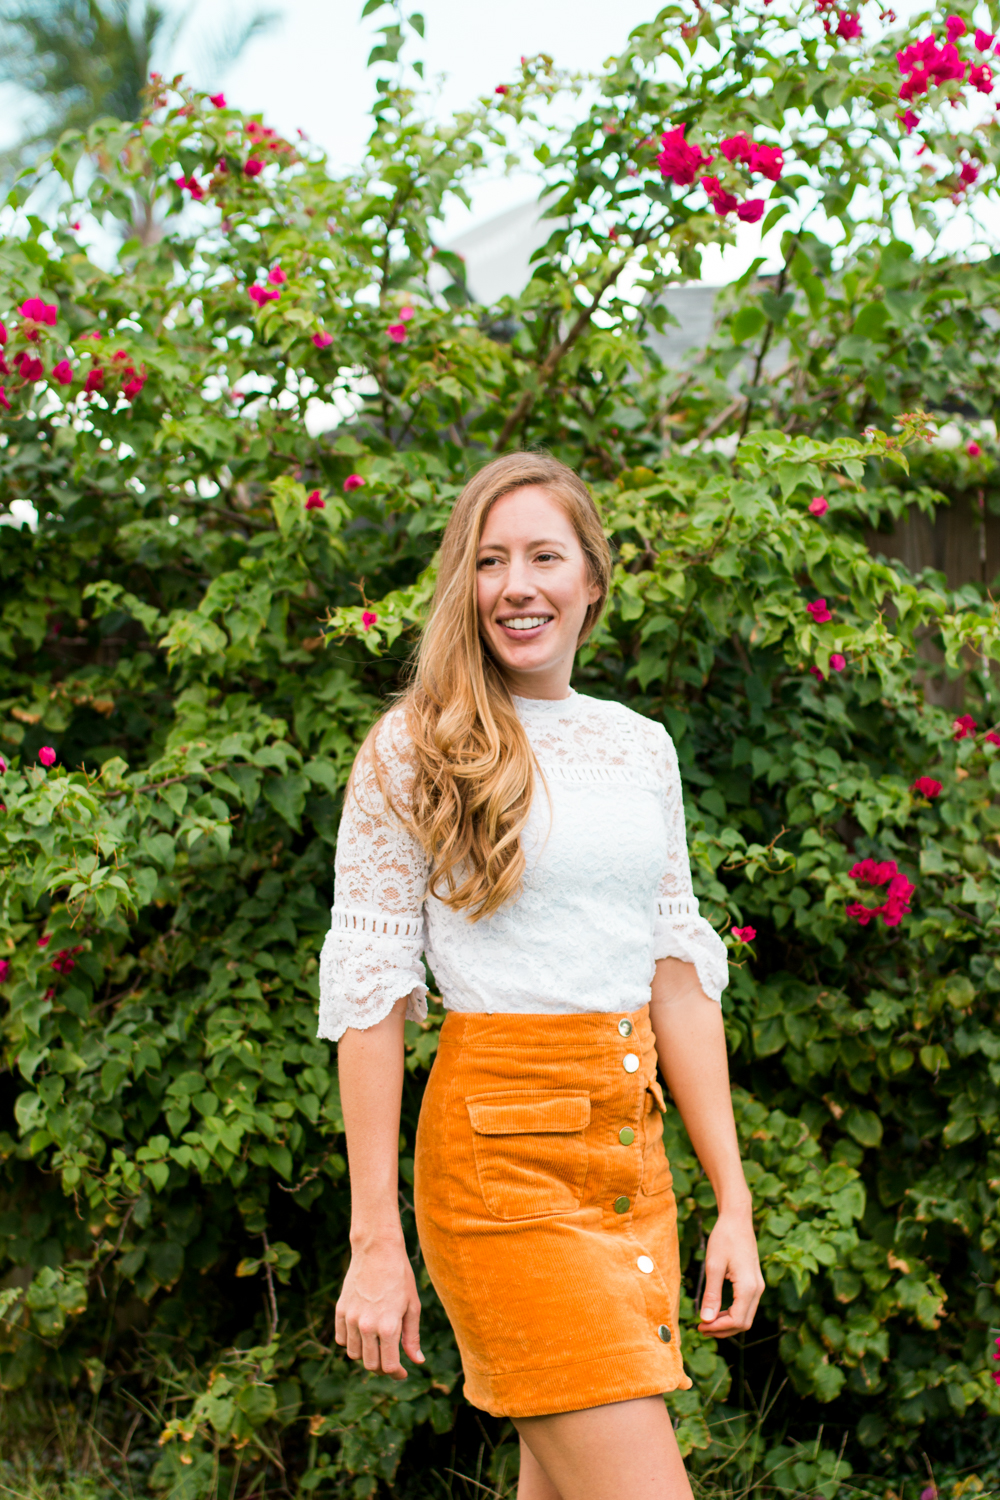 How to Style a Lace Top for Fall | How to Wear a Lace Top for Fall | Suede Skirt | Corduroy Skirt | How to Dress for Fall in Warm Weather | Fall Outfit Idea | Corduroy Button Up Skirt - Sunshine Style, Florida Fashion Blog